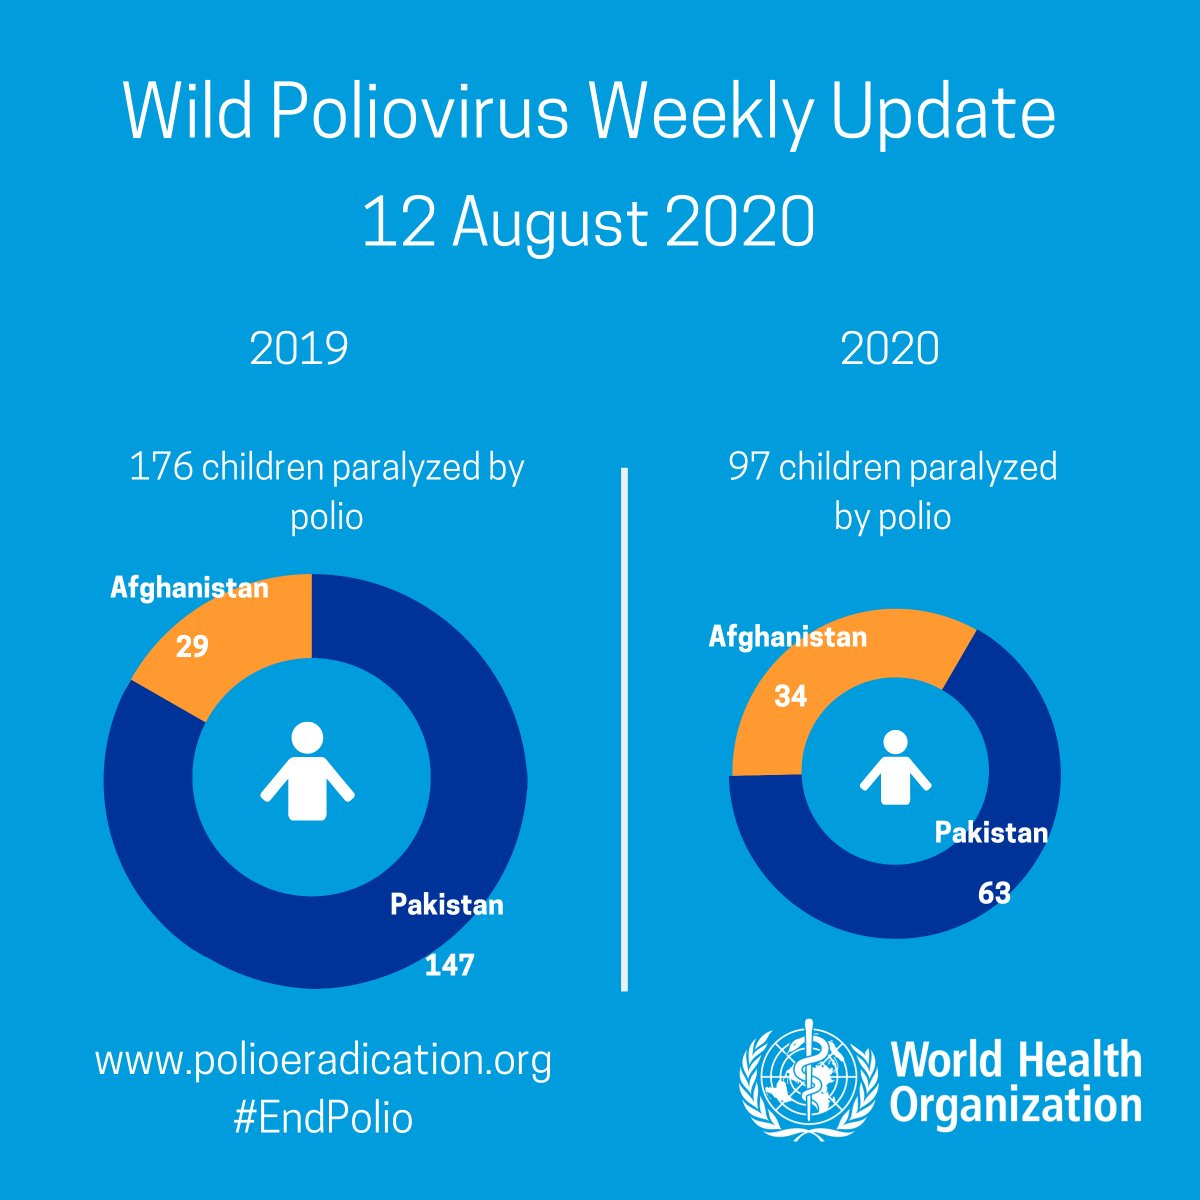 Wild poliovirus weekly case update from @WHO: No new cases.   In 2020: #Afghanistan: 34, #Pakistan: 63   In 2019: #Afghanistan: 29, #Pakistan: 147    More: https://t.co/n9ZiFJTy4f https://t.co/bpjYU4Dvmj